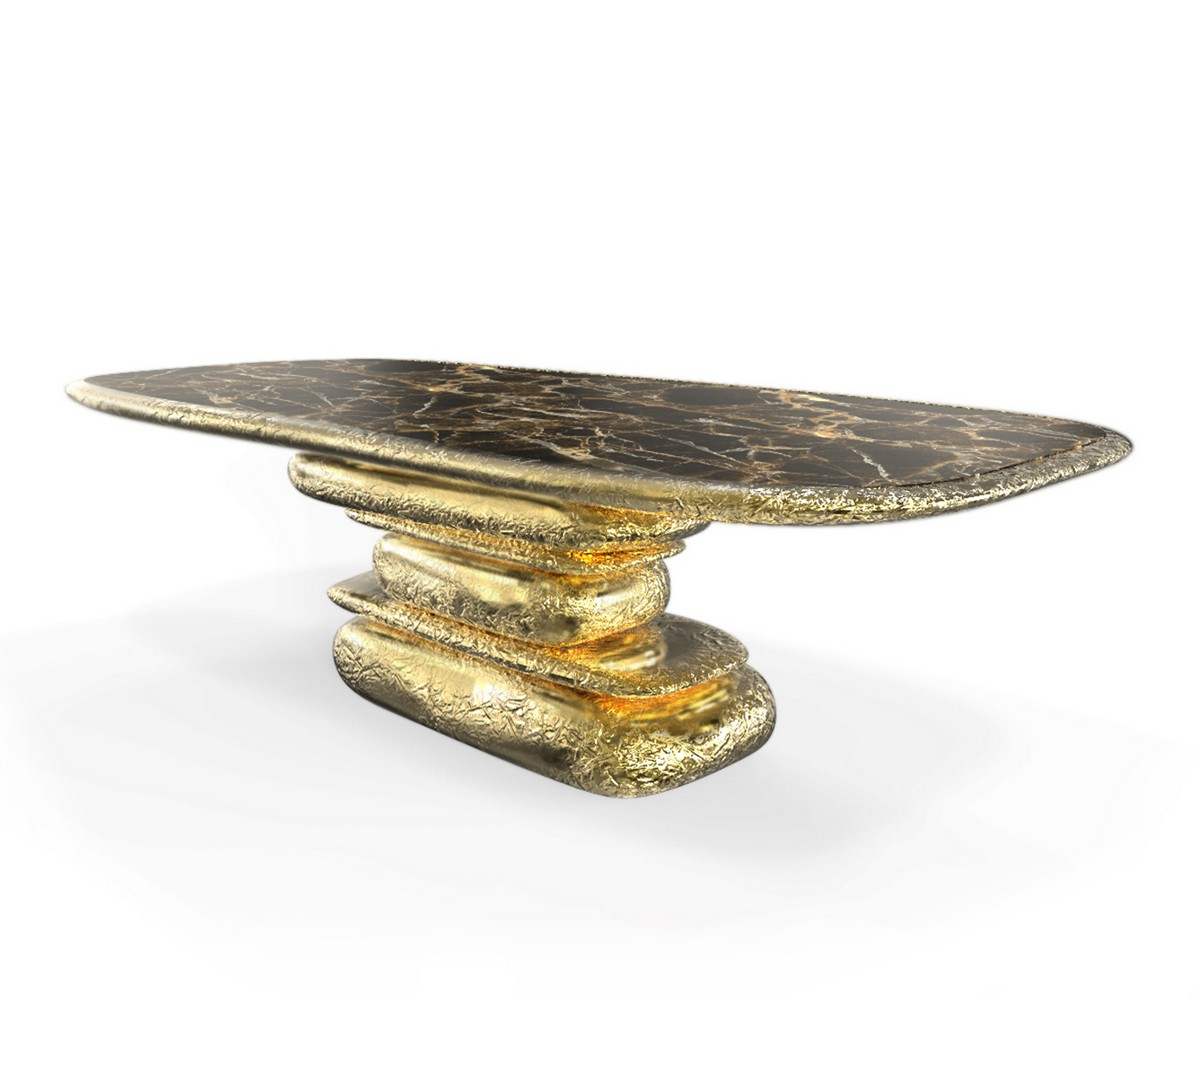 Modern Dining Tables Inspired by History modern dining tables Modern Dining Tables Inspired by History stonehege